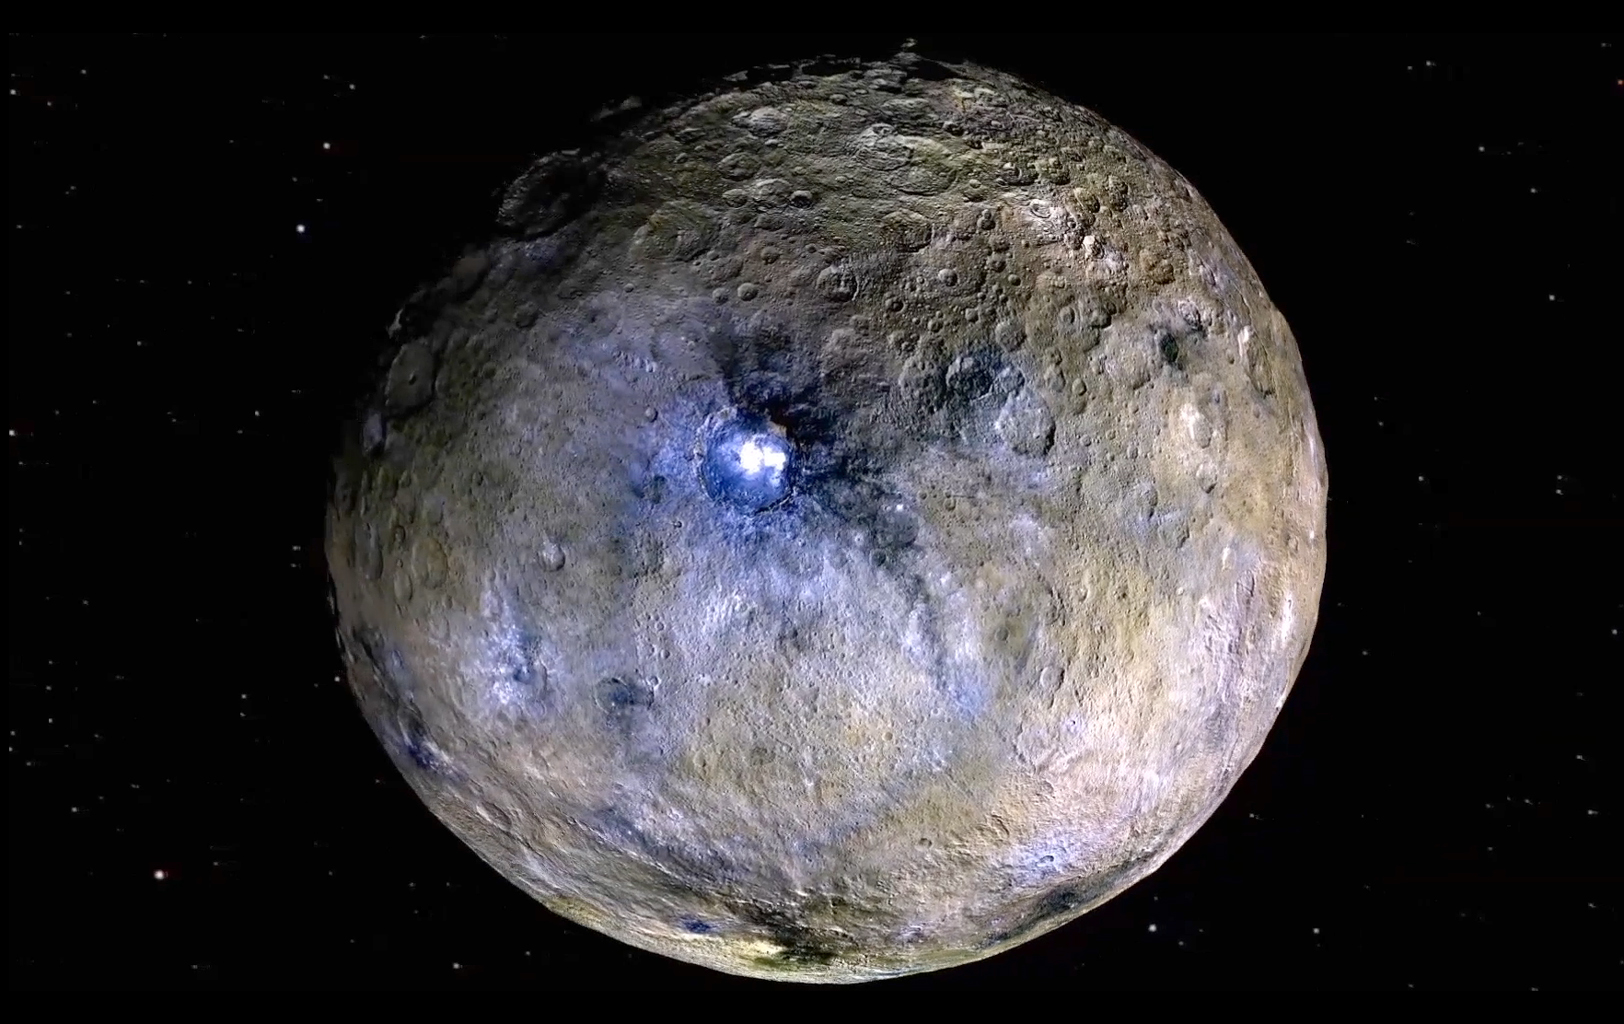 False-Color View of Dwarf Planet Ceres